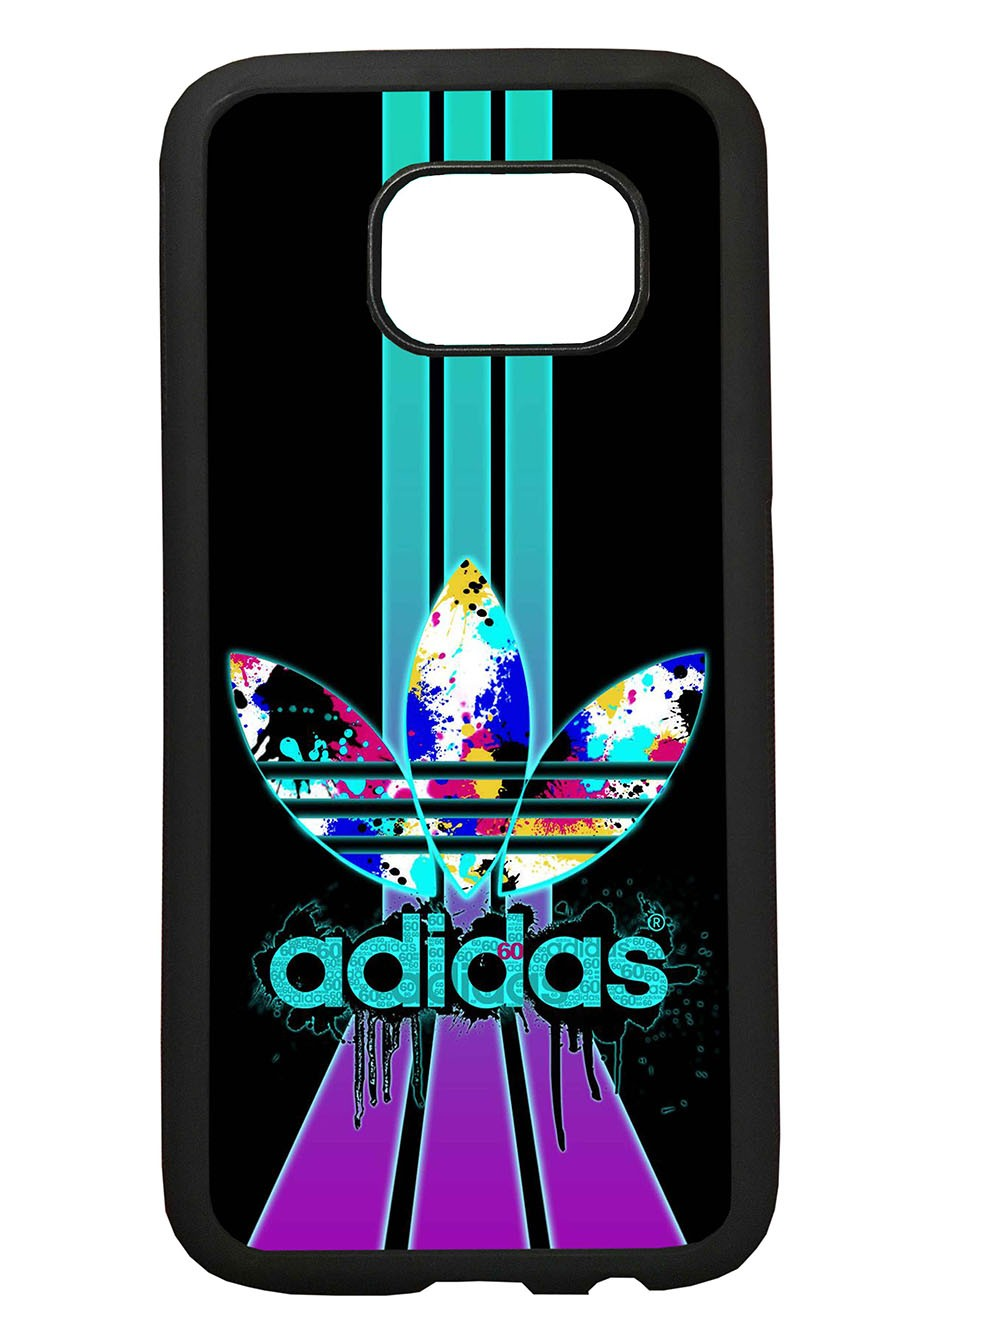 carcasa para samsung galaxy s6 edge plus